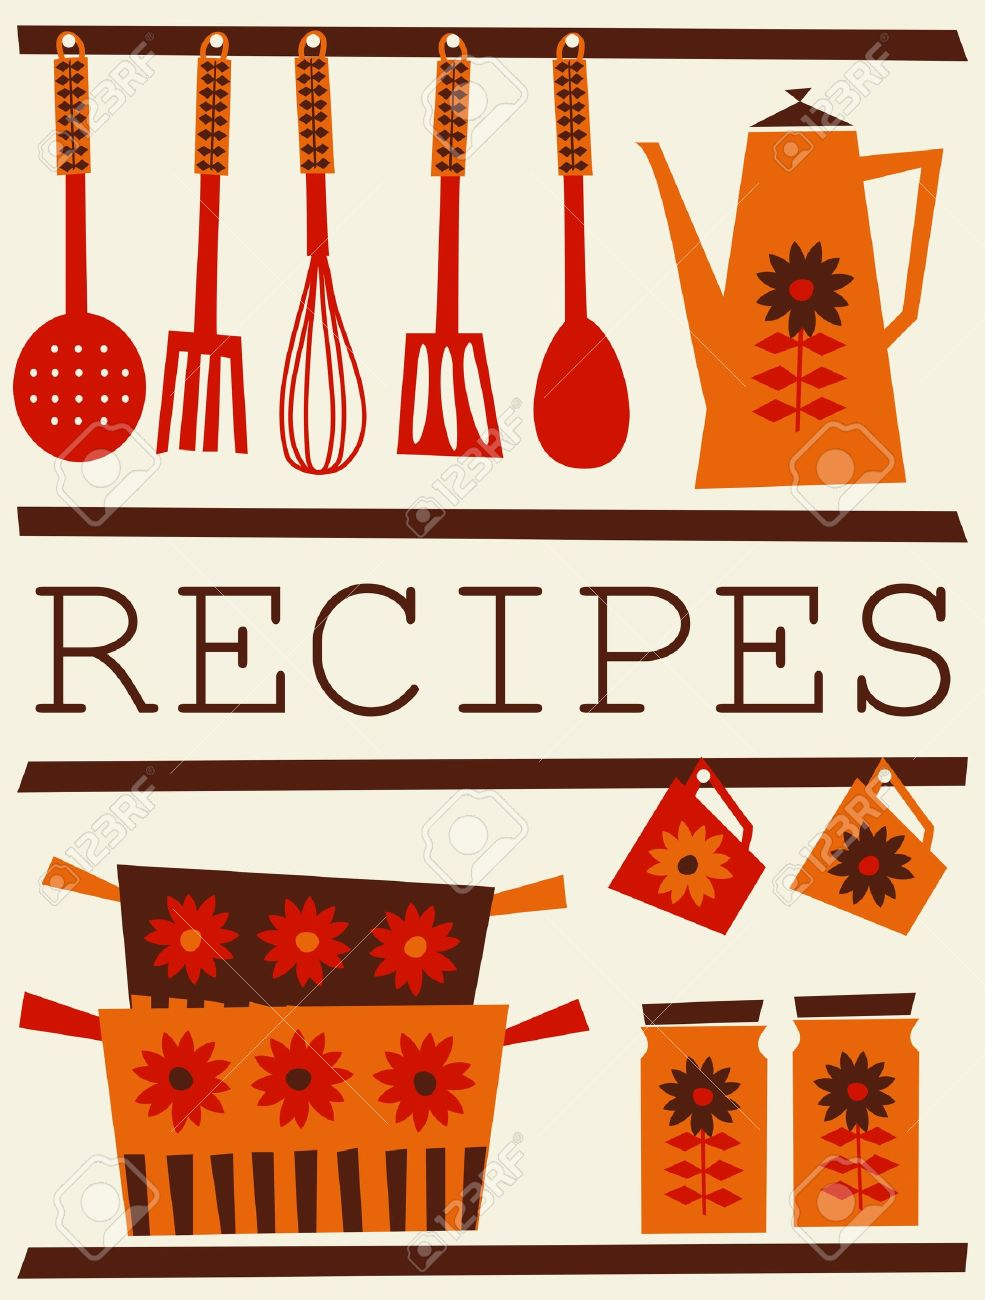 Red Kitchen Accessories Illustration Of Kitchen Accessories In Retro Style Recipe Card